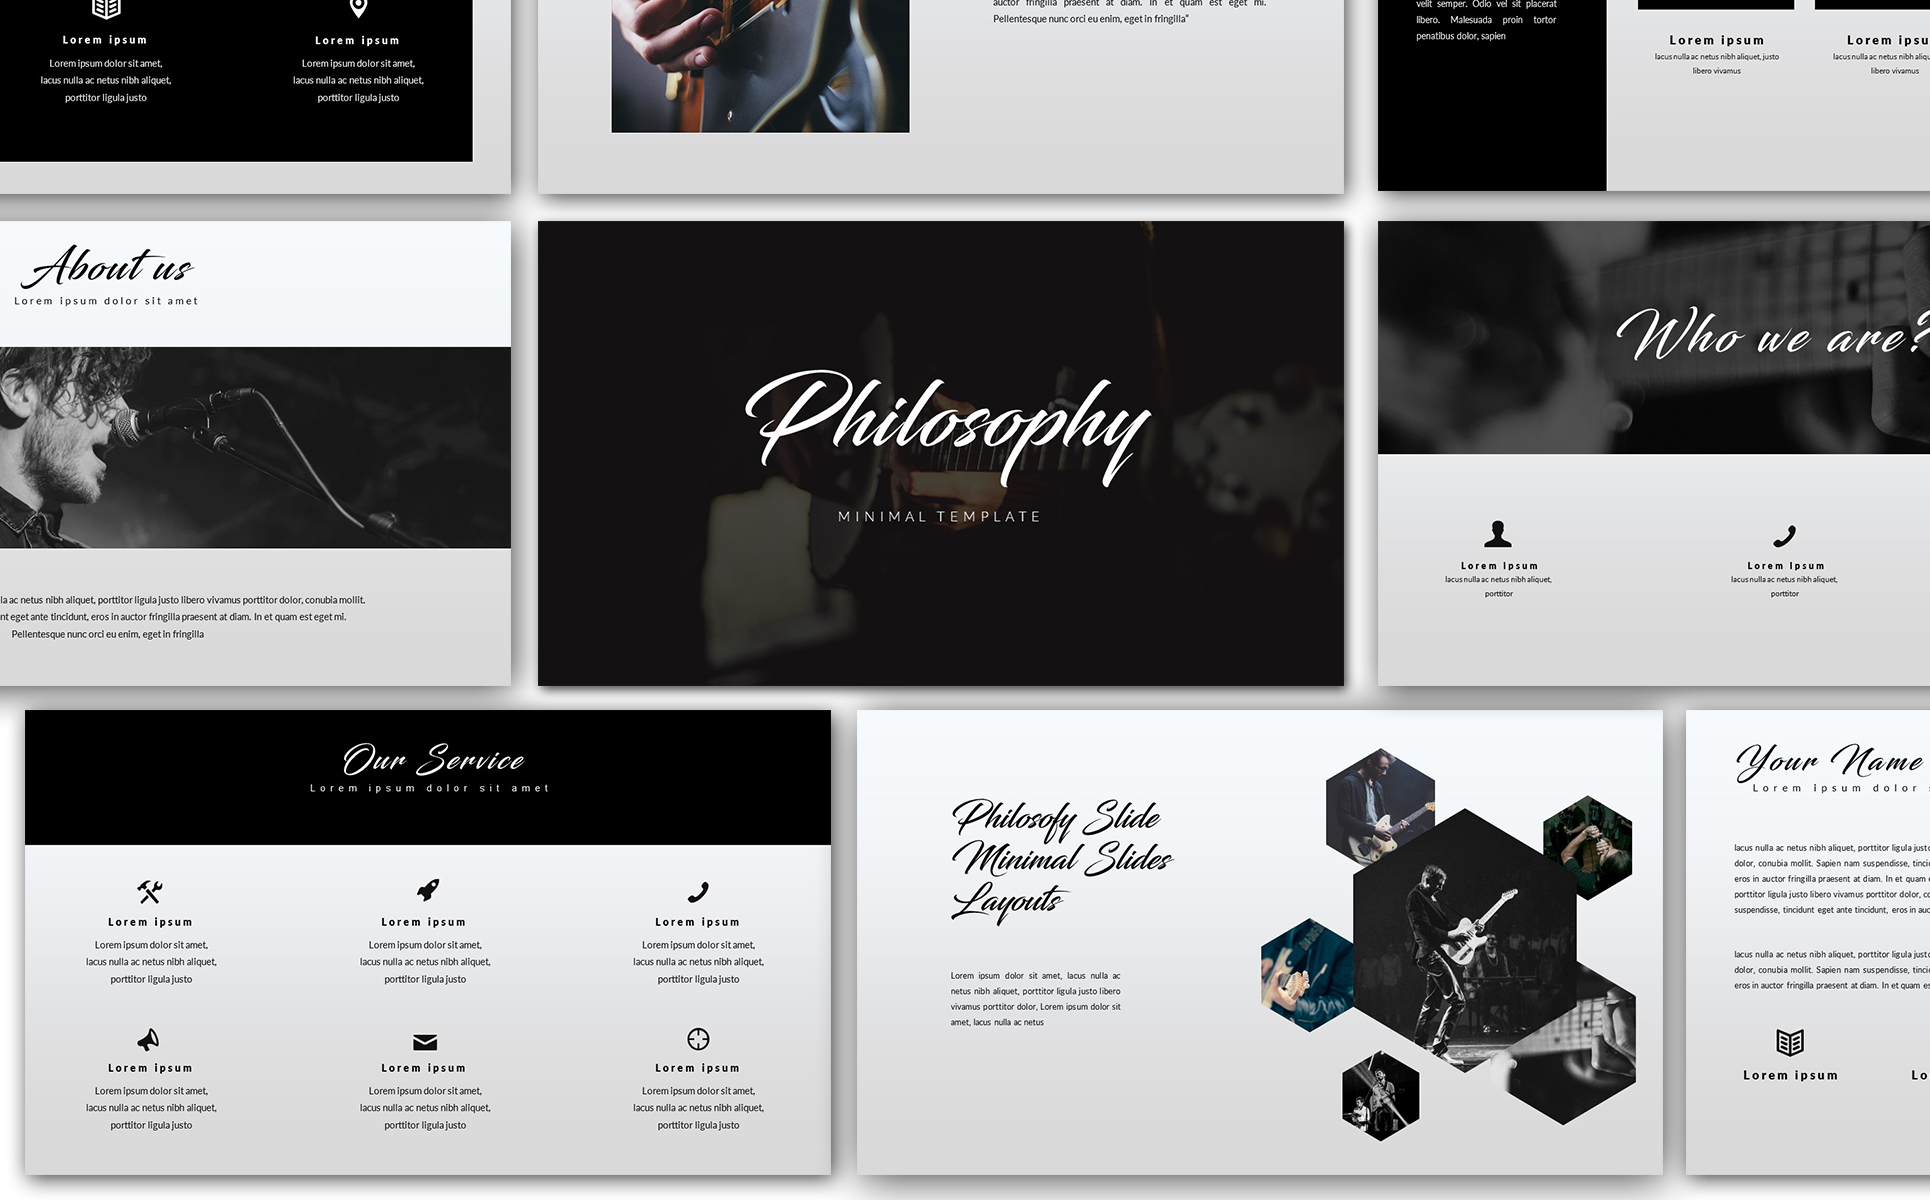 Philosophy minimal powerpoint template 68385 philosophy minimal powerpoint template big screenshot toneelgroepblik